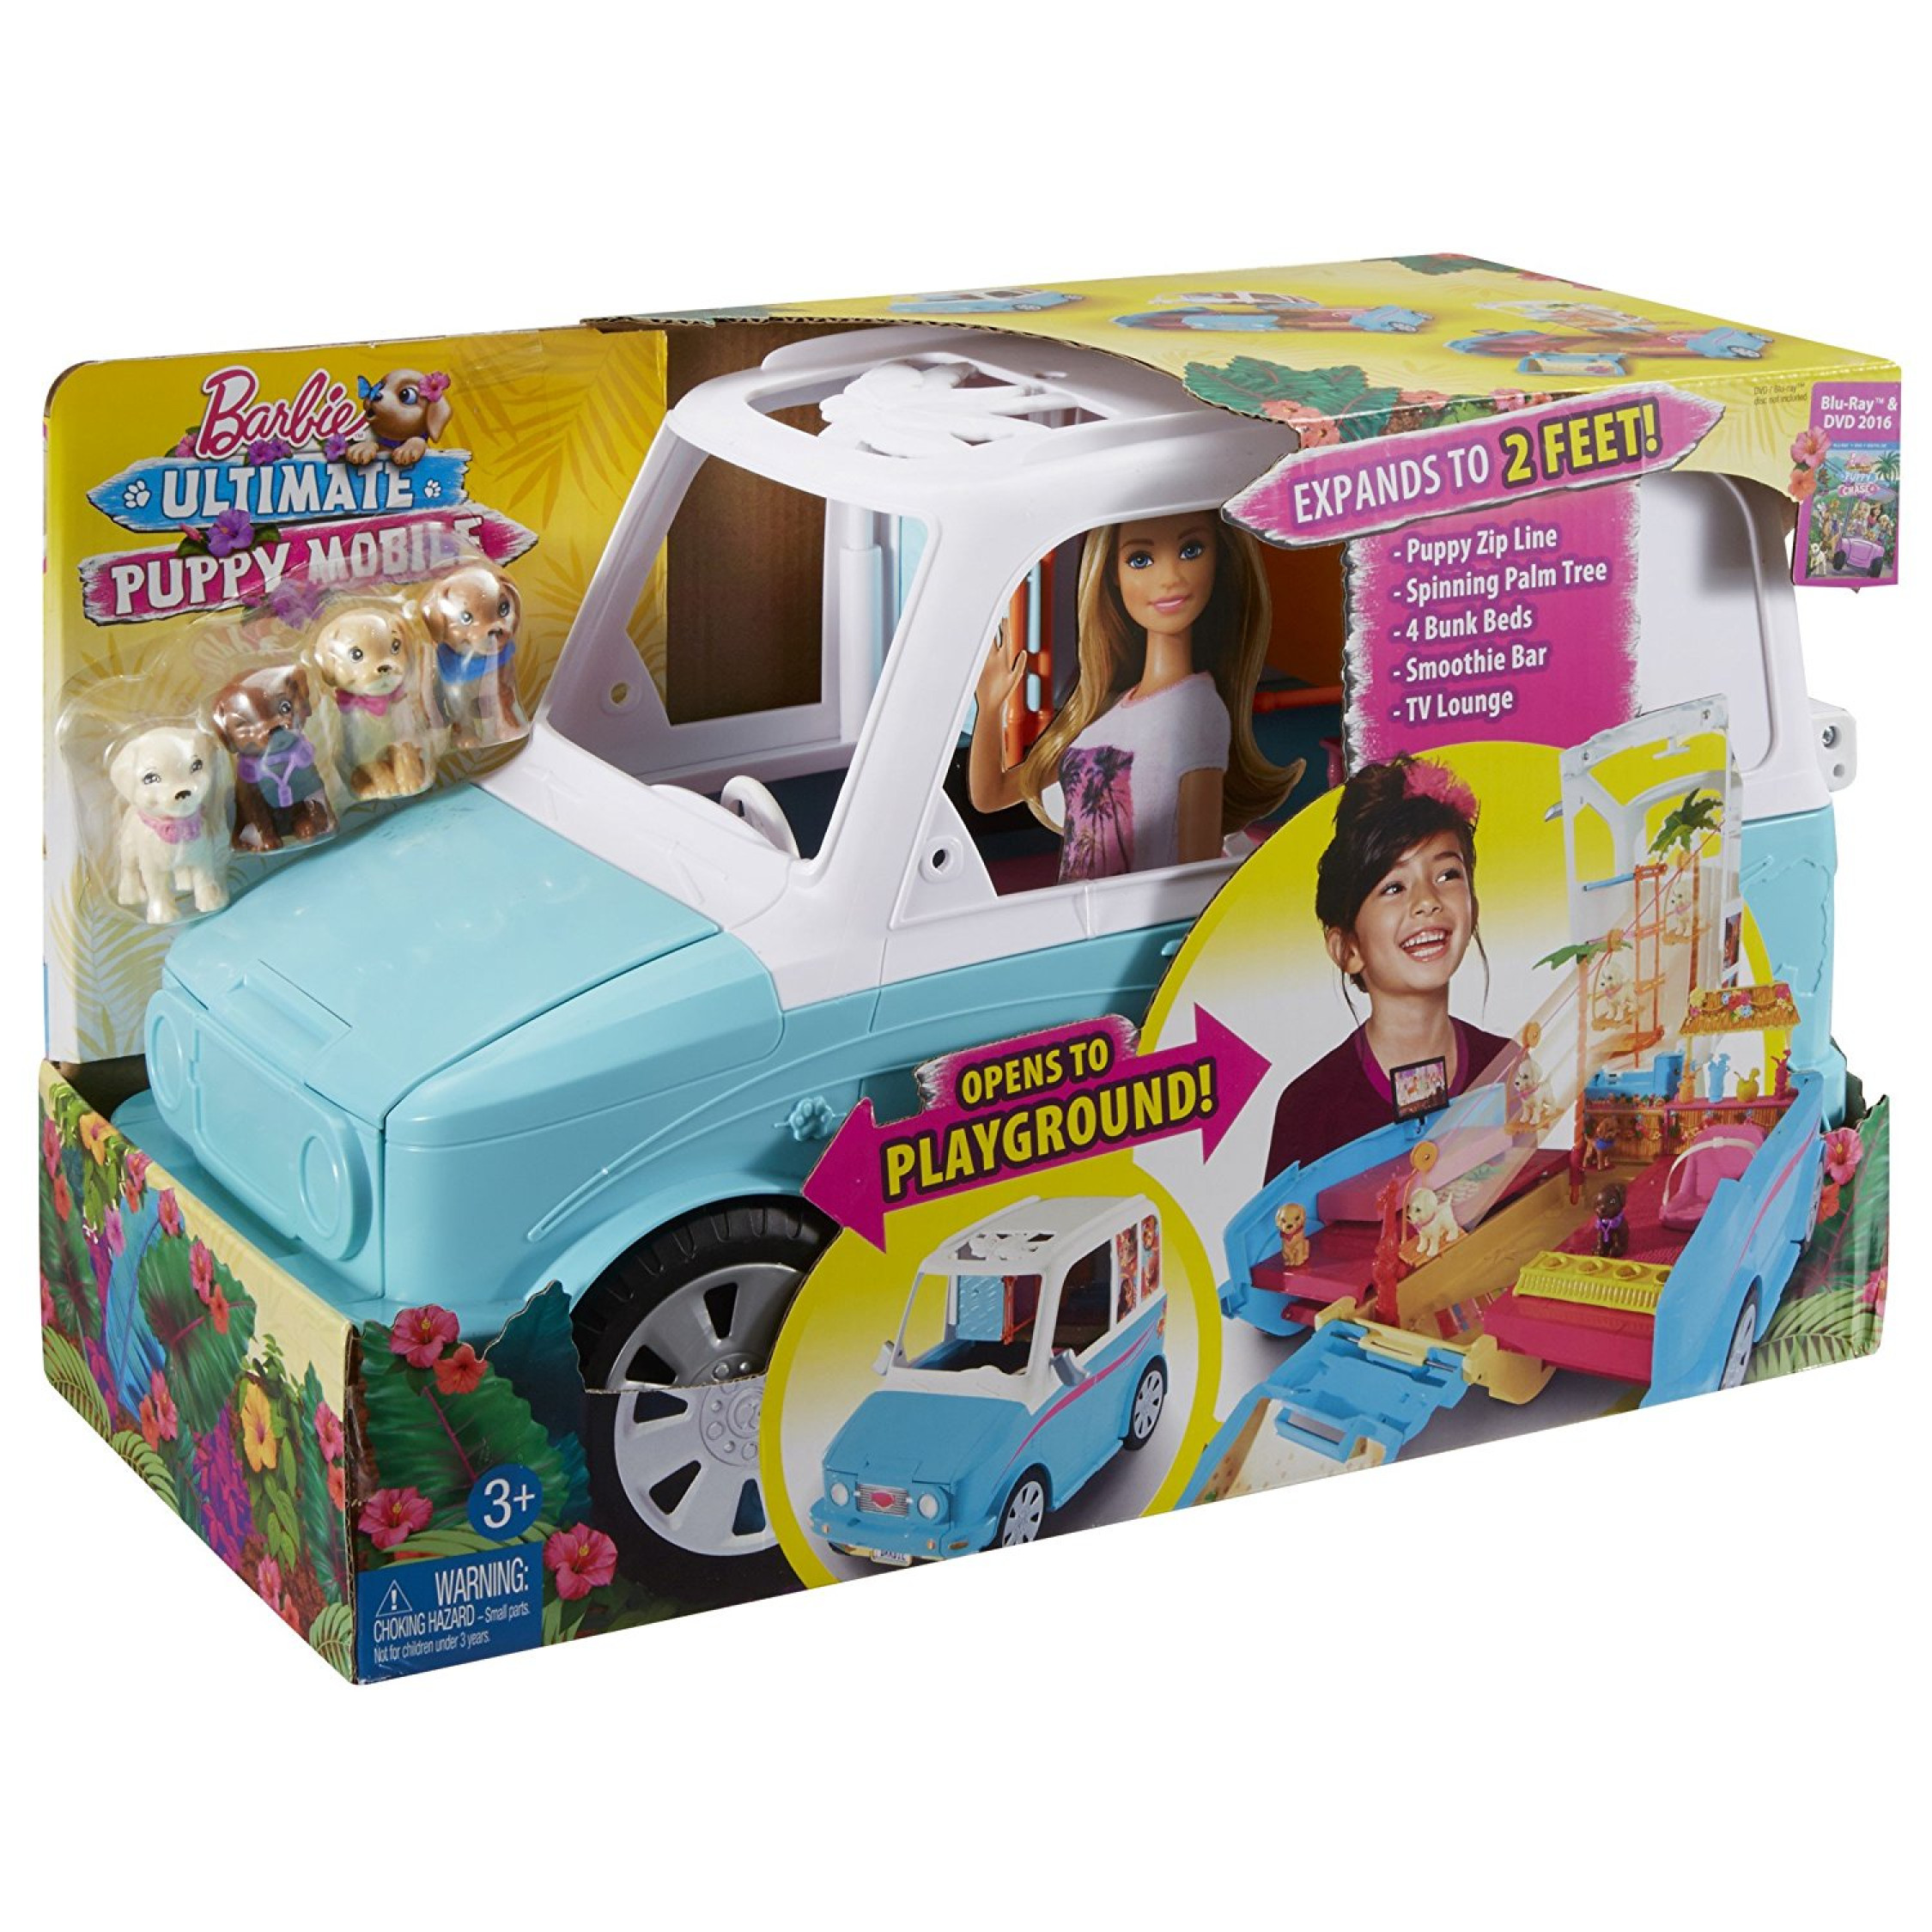 Barbie Ultimate Puppy Mobile VEHICLE KIDS GIRLS TOY GIFT PLAYSET